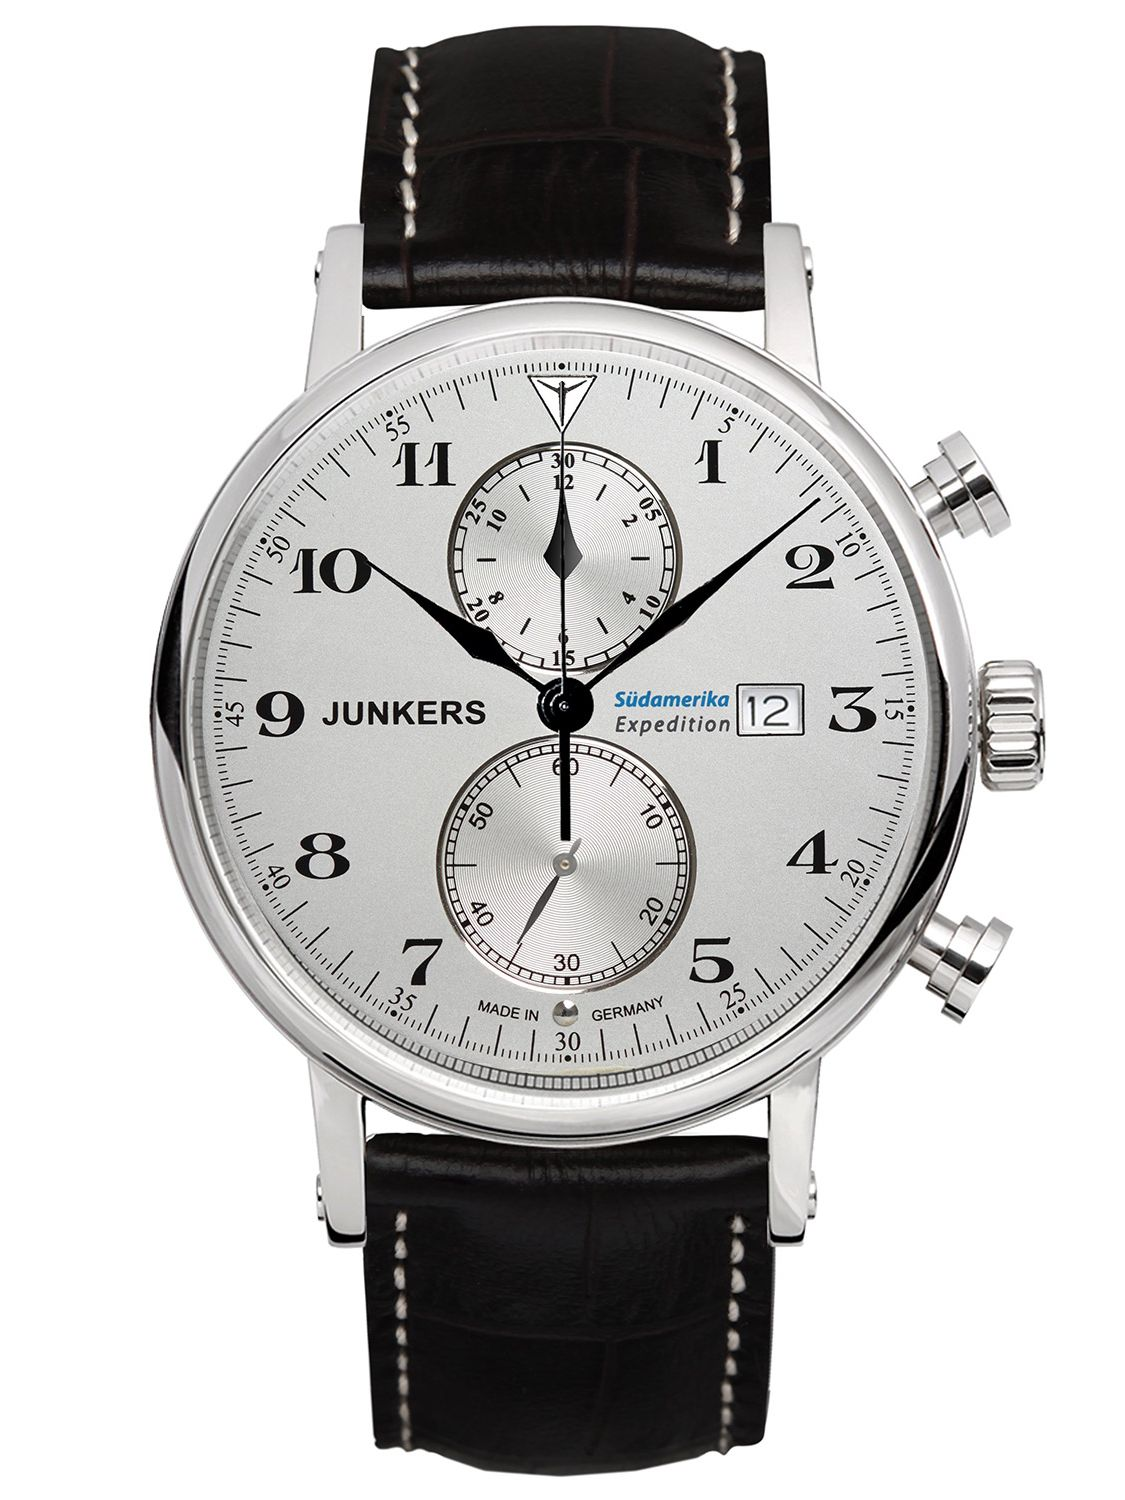 JUNKERS Watches at low prices • uhrcenter Watch Shop